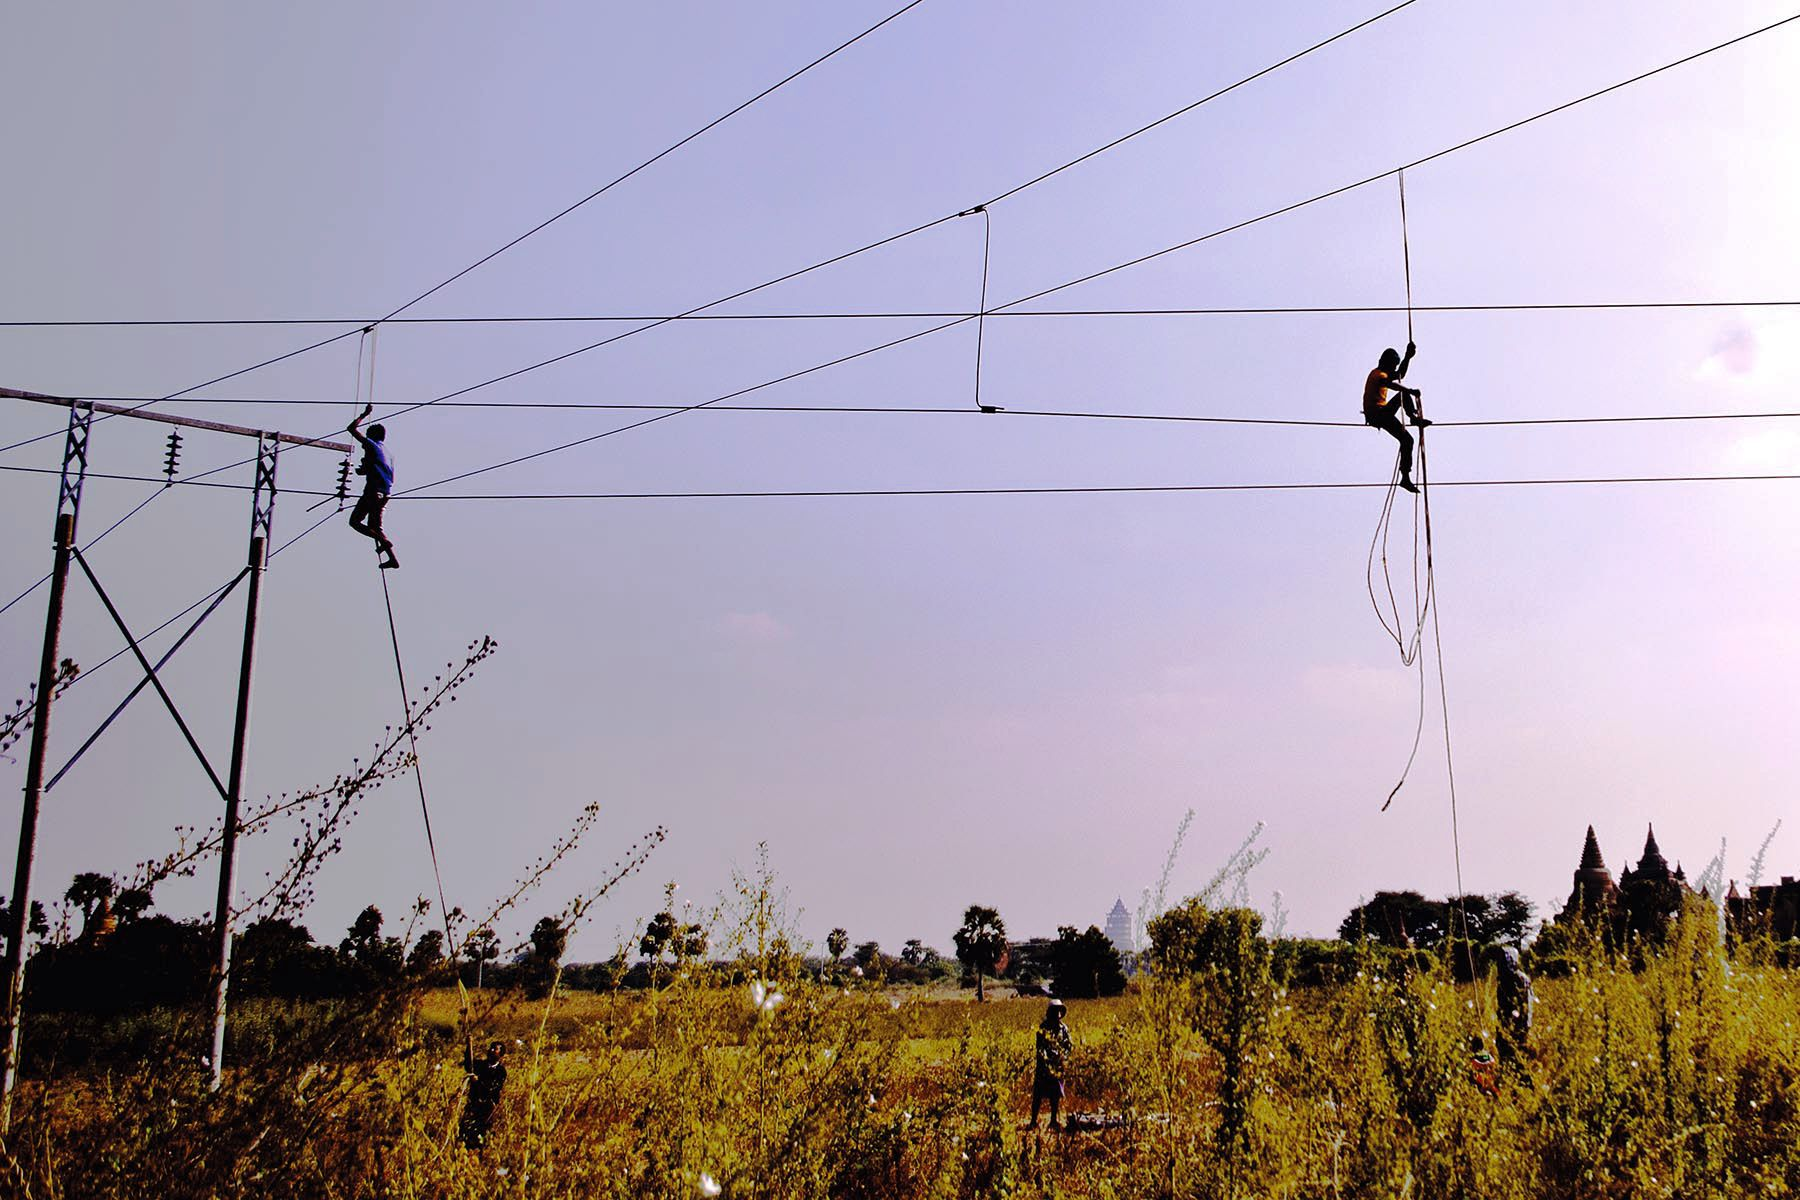 Highwire Act on Powerlines